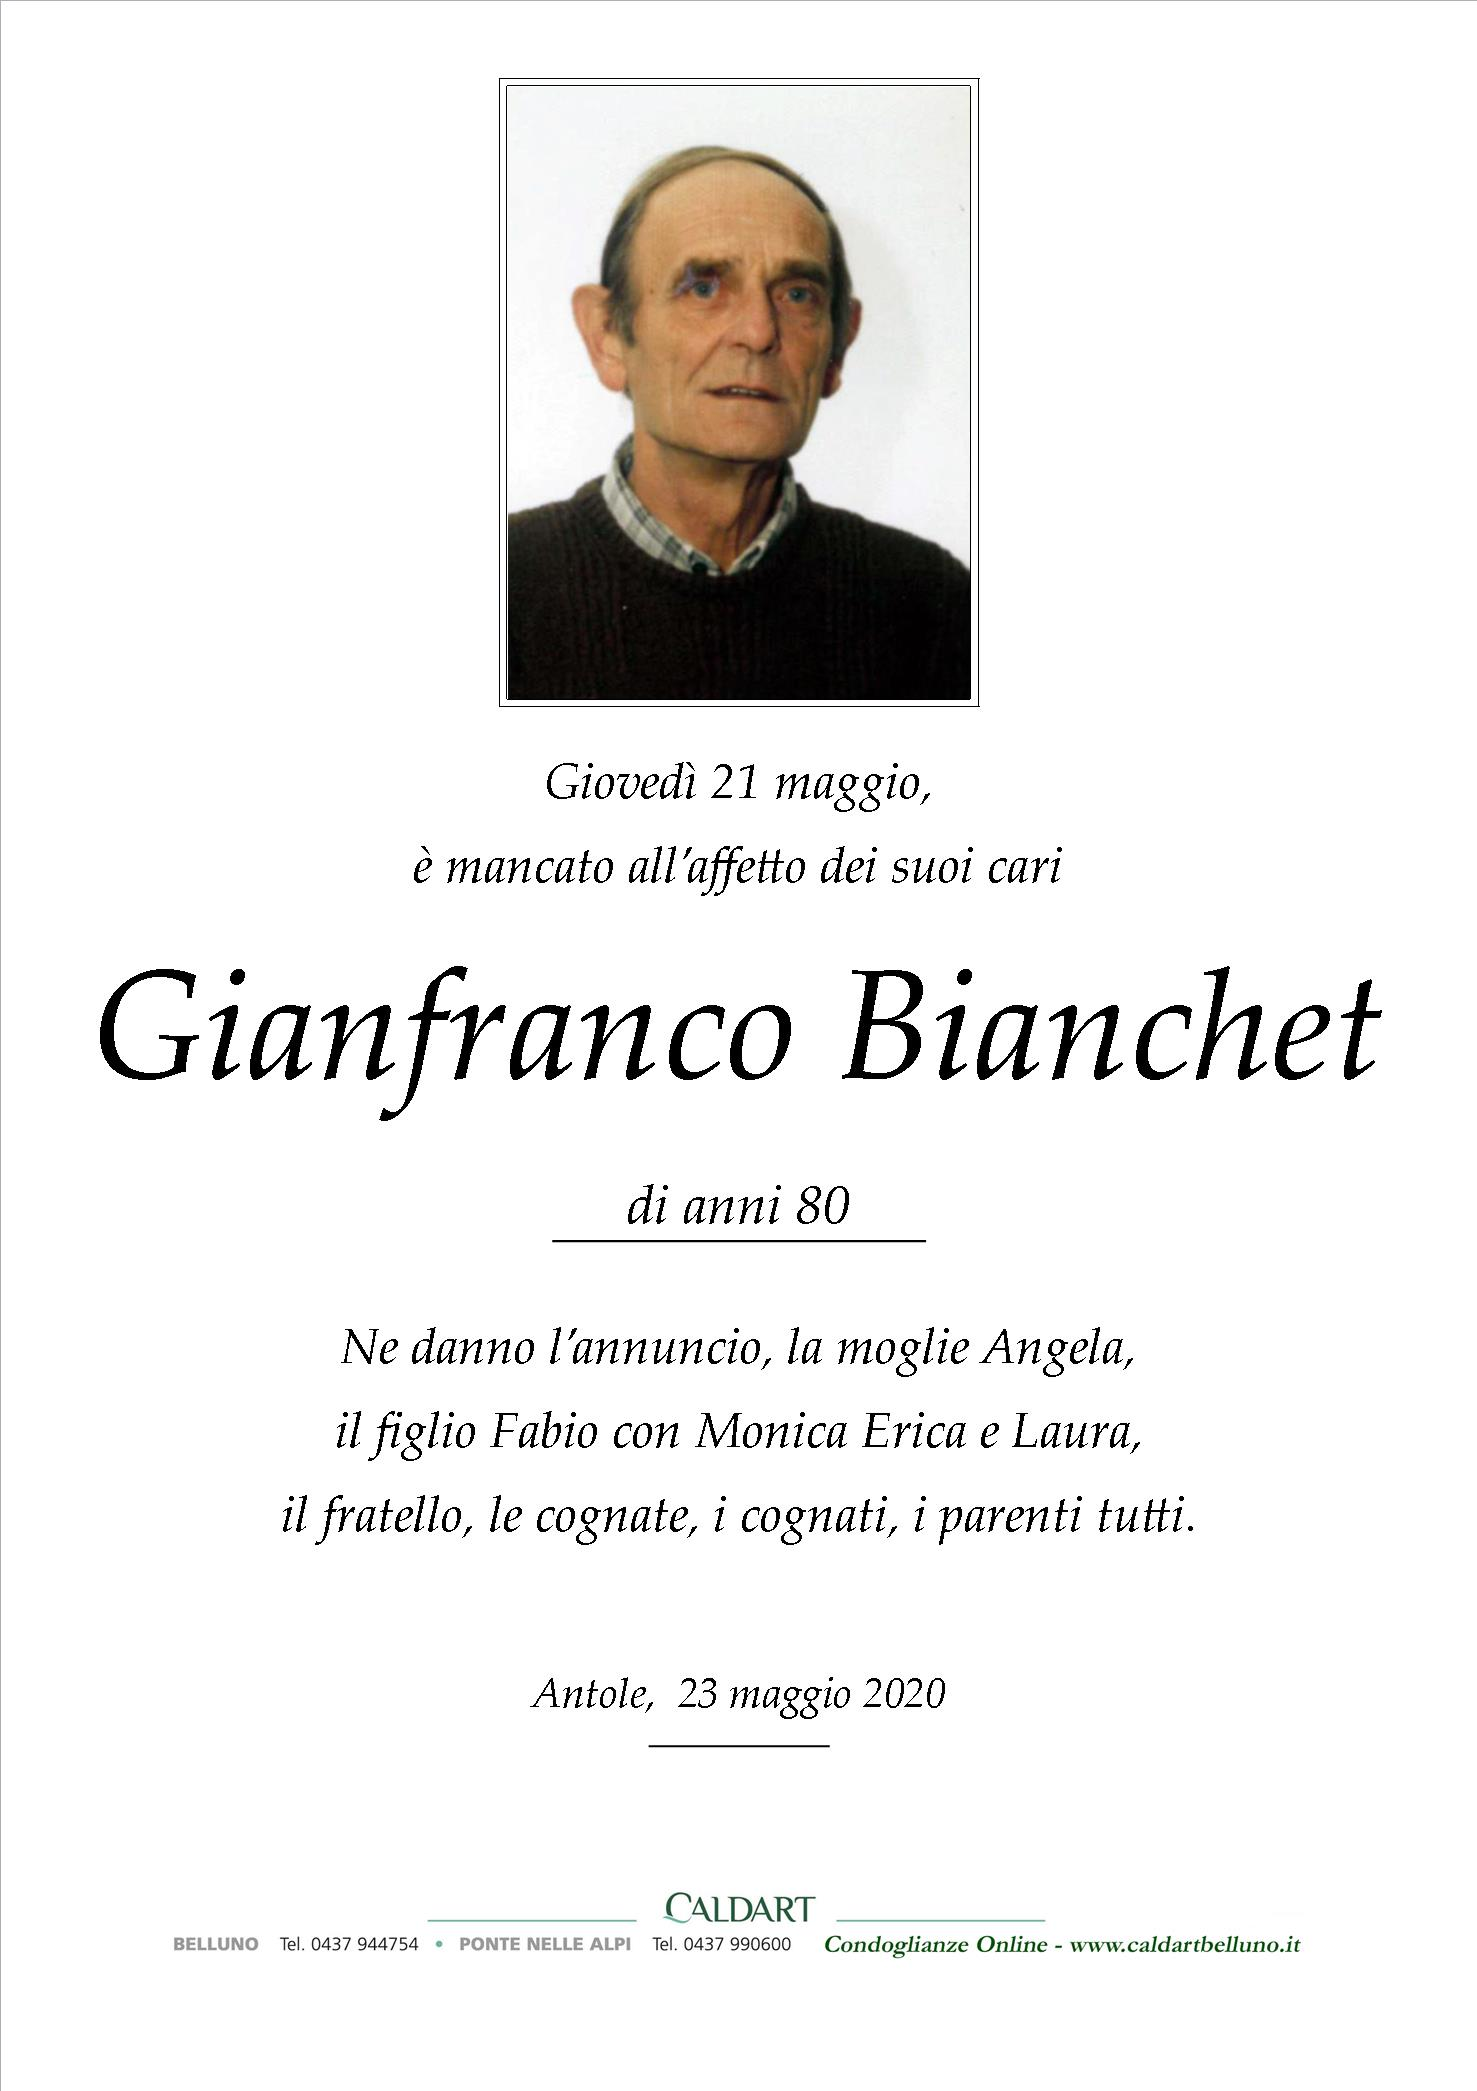 Bianchet Gianfranco